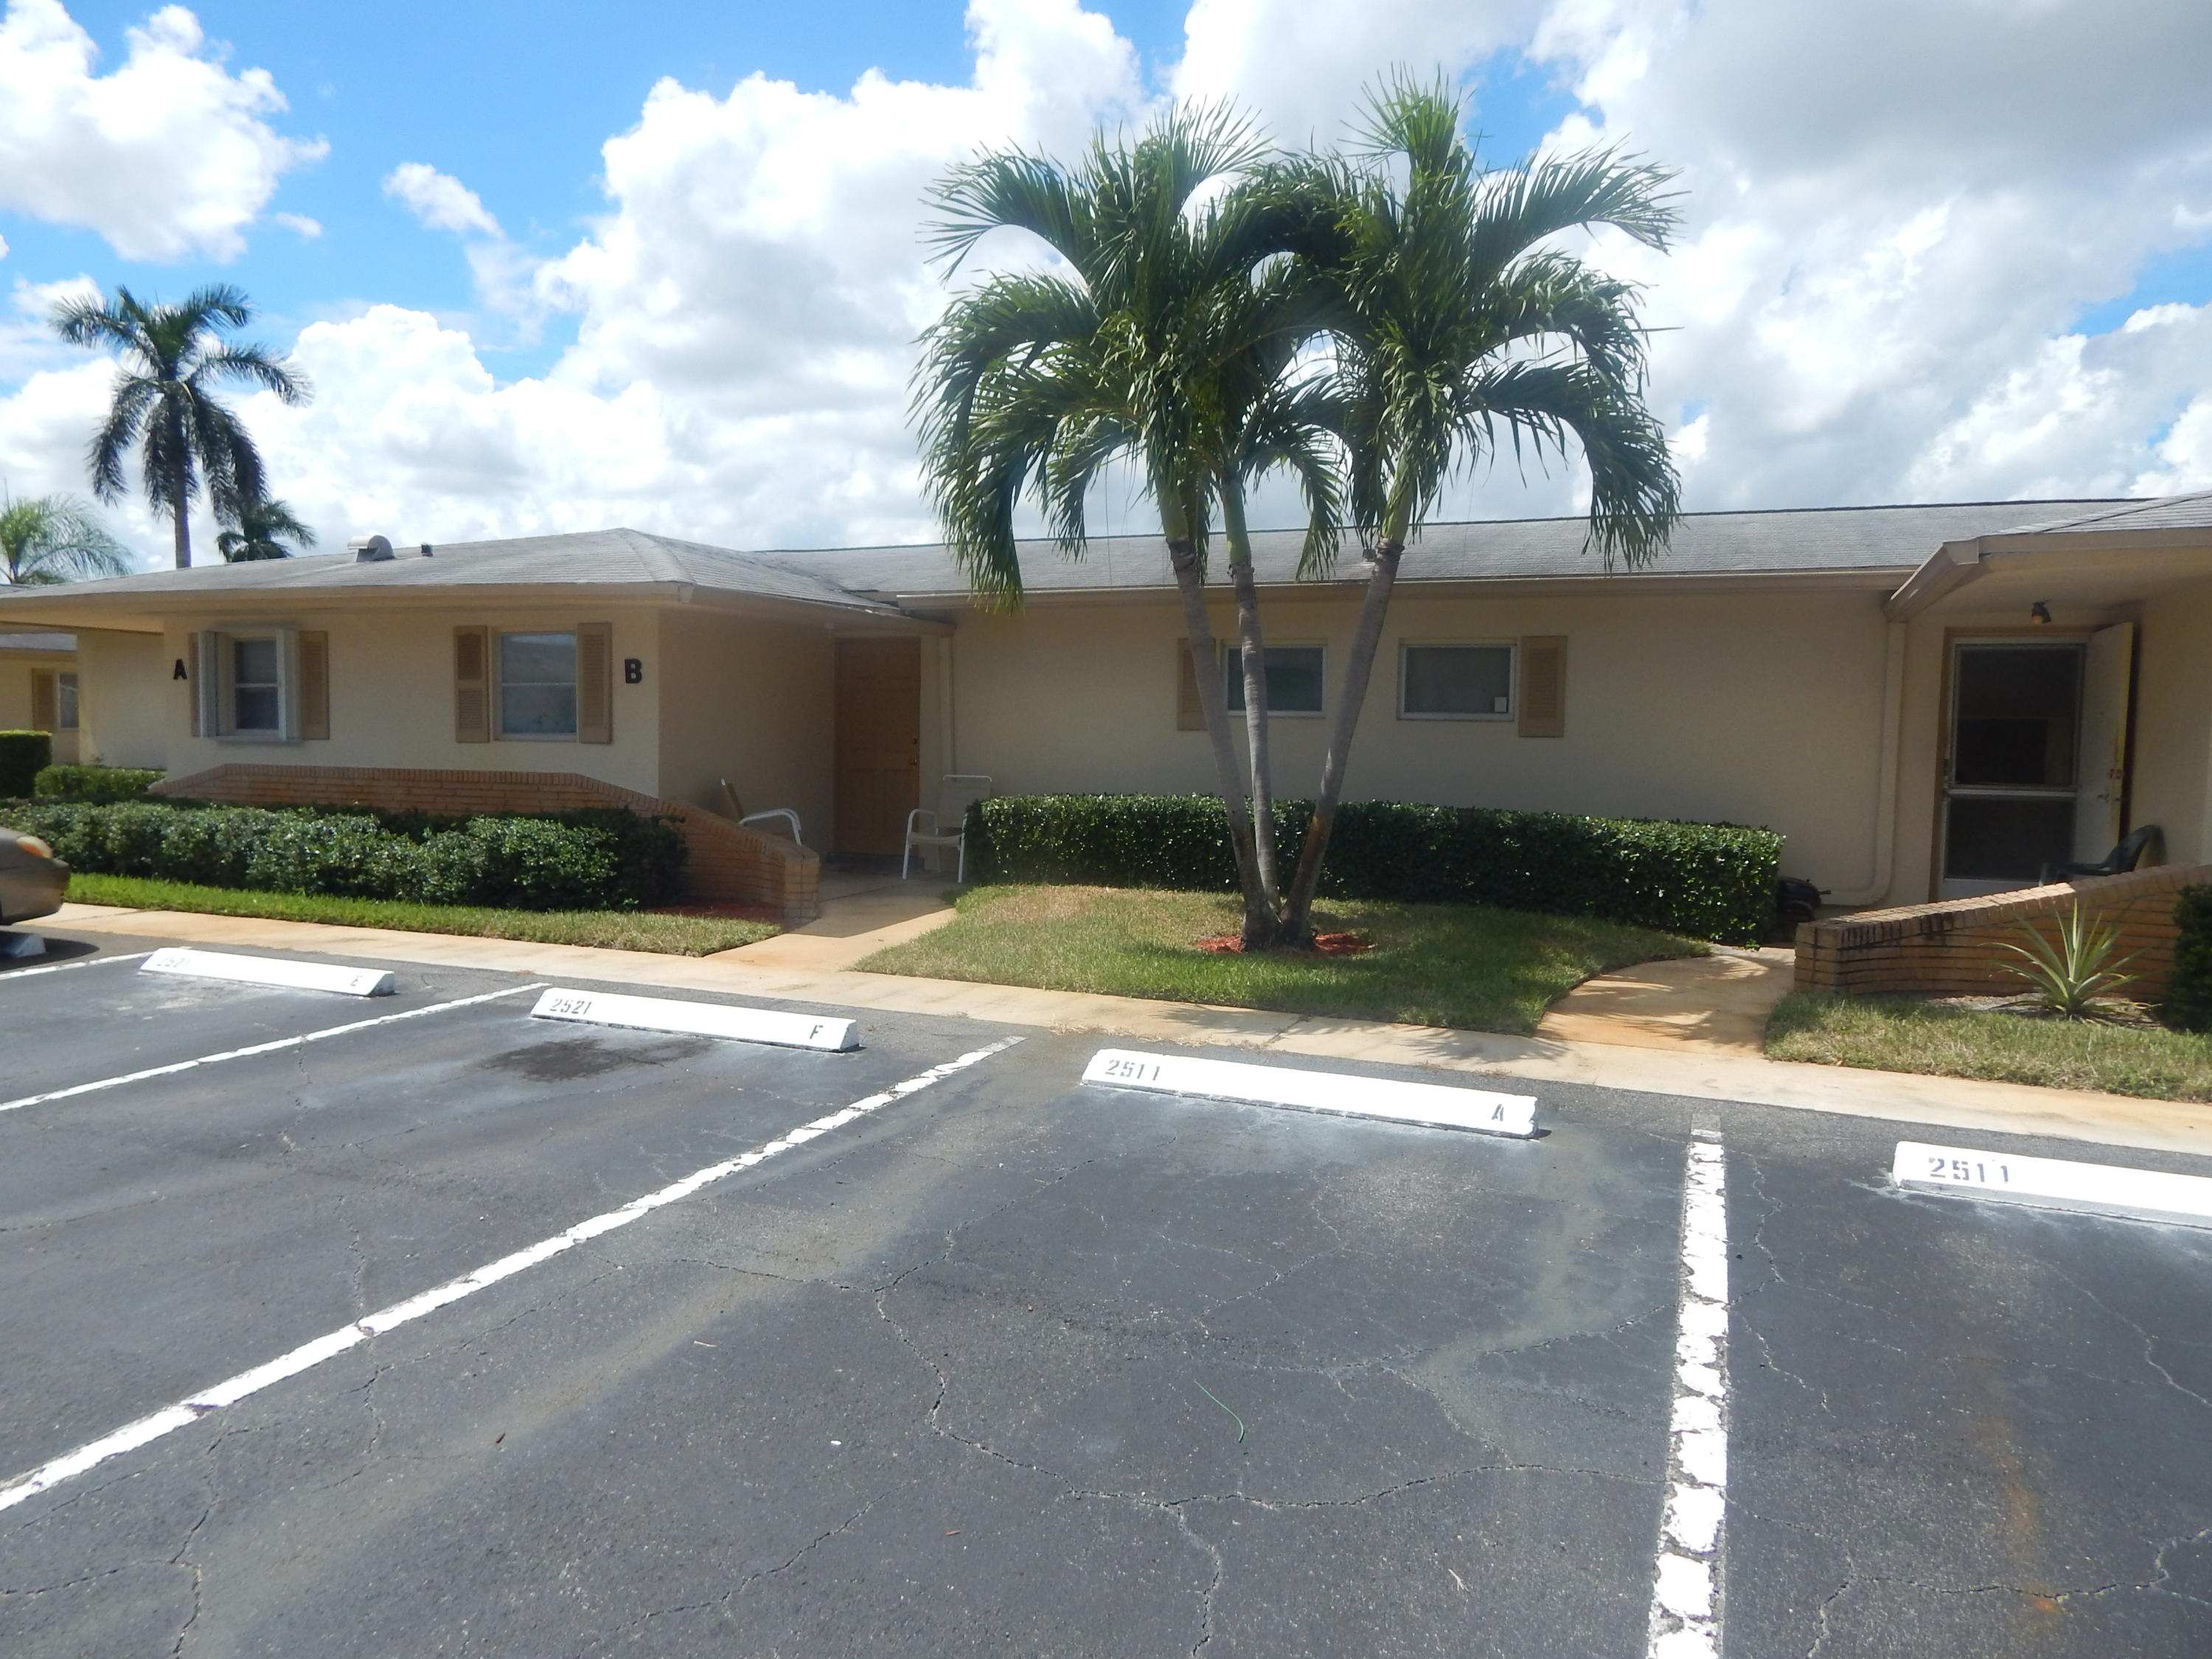 2511 Barkley Drive, West Palm Beach, Florida 33415, 1 Bedroom Bedrooms, ,1 BathroomBathrooms,Condo/Coop,For Sale,Barkley,1,RX-10466030